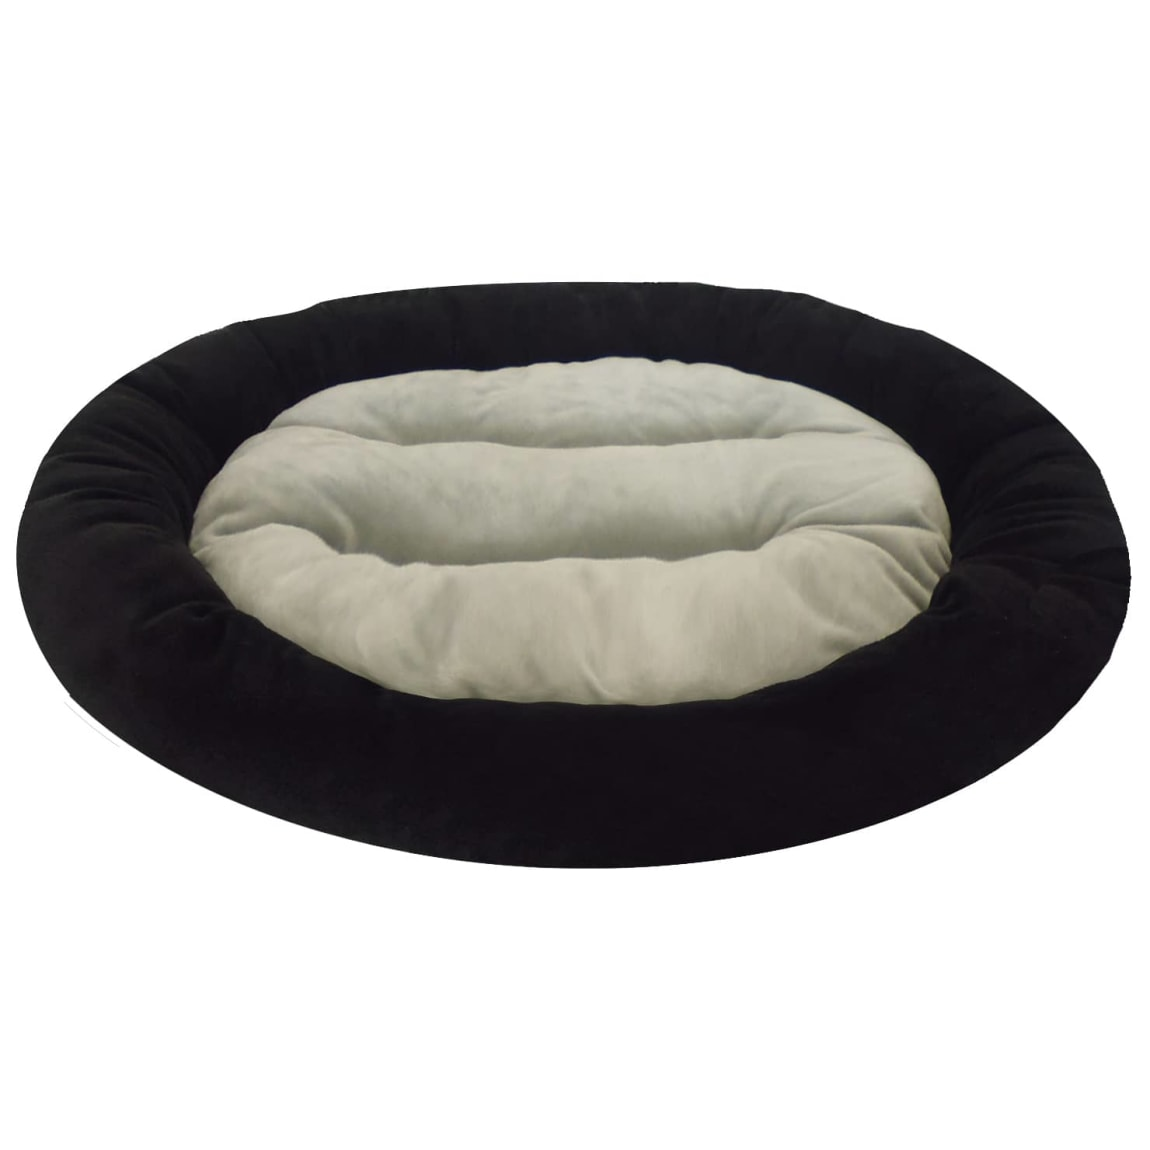 Oval Snuggle Pet Bed - Black